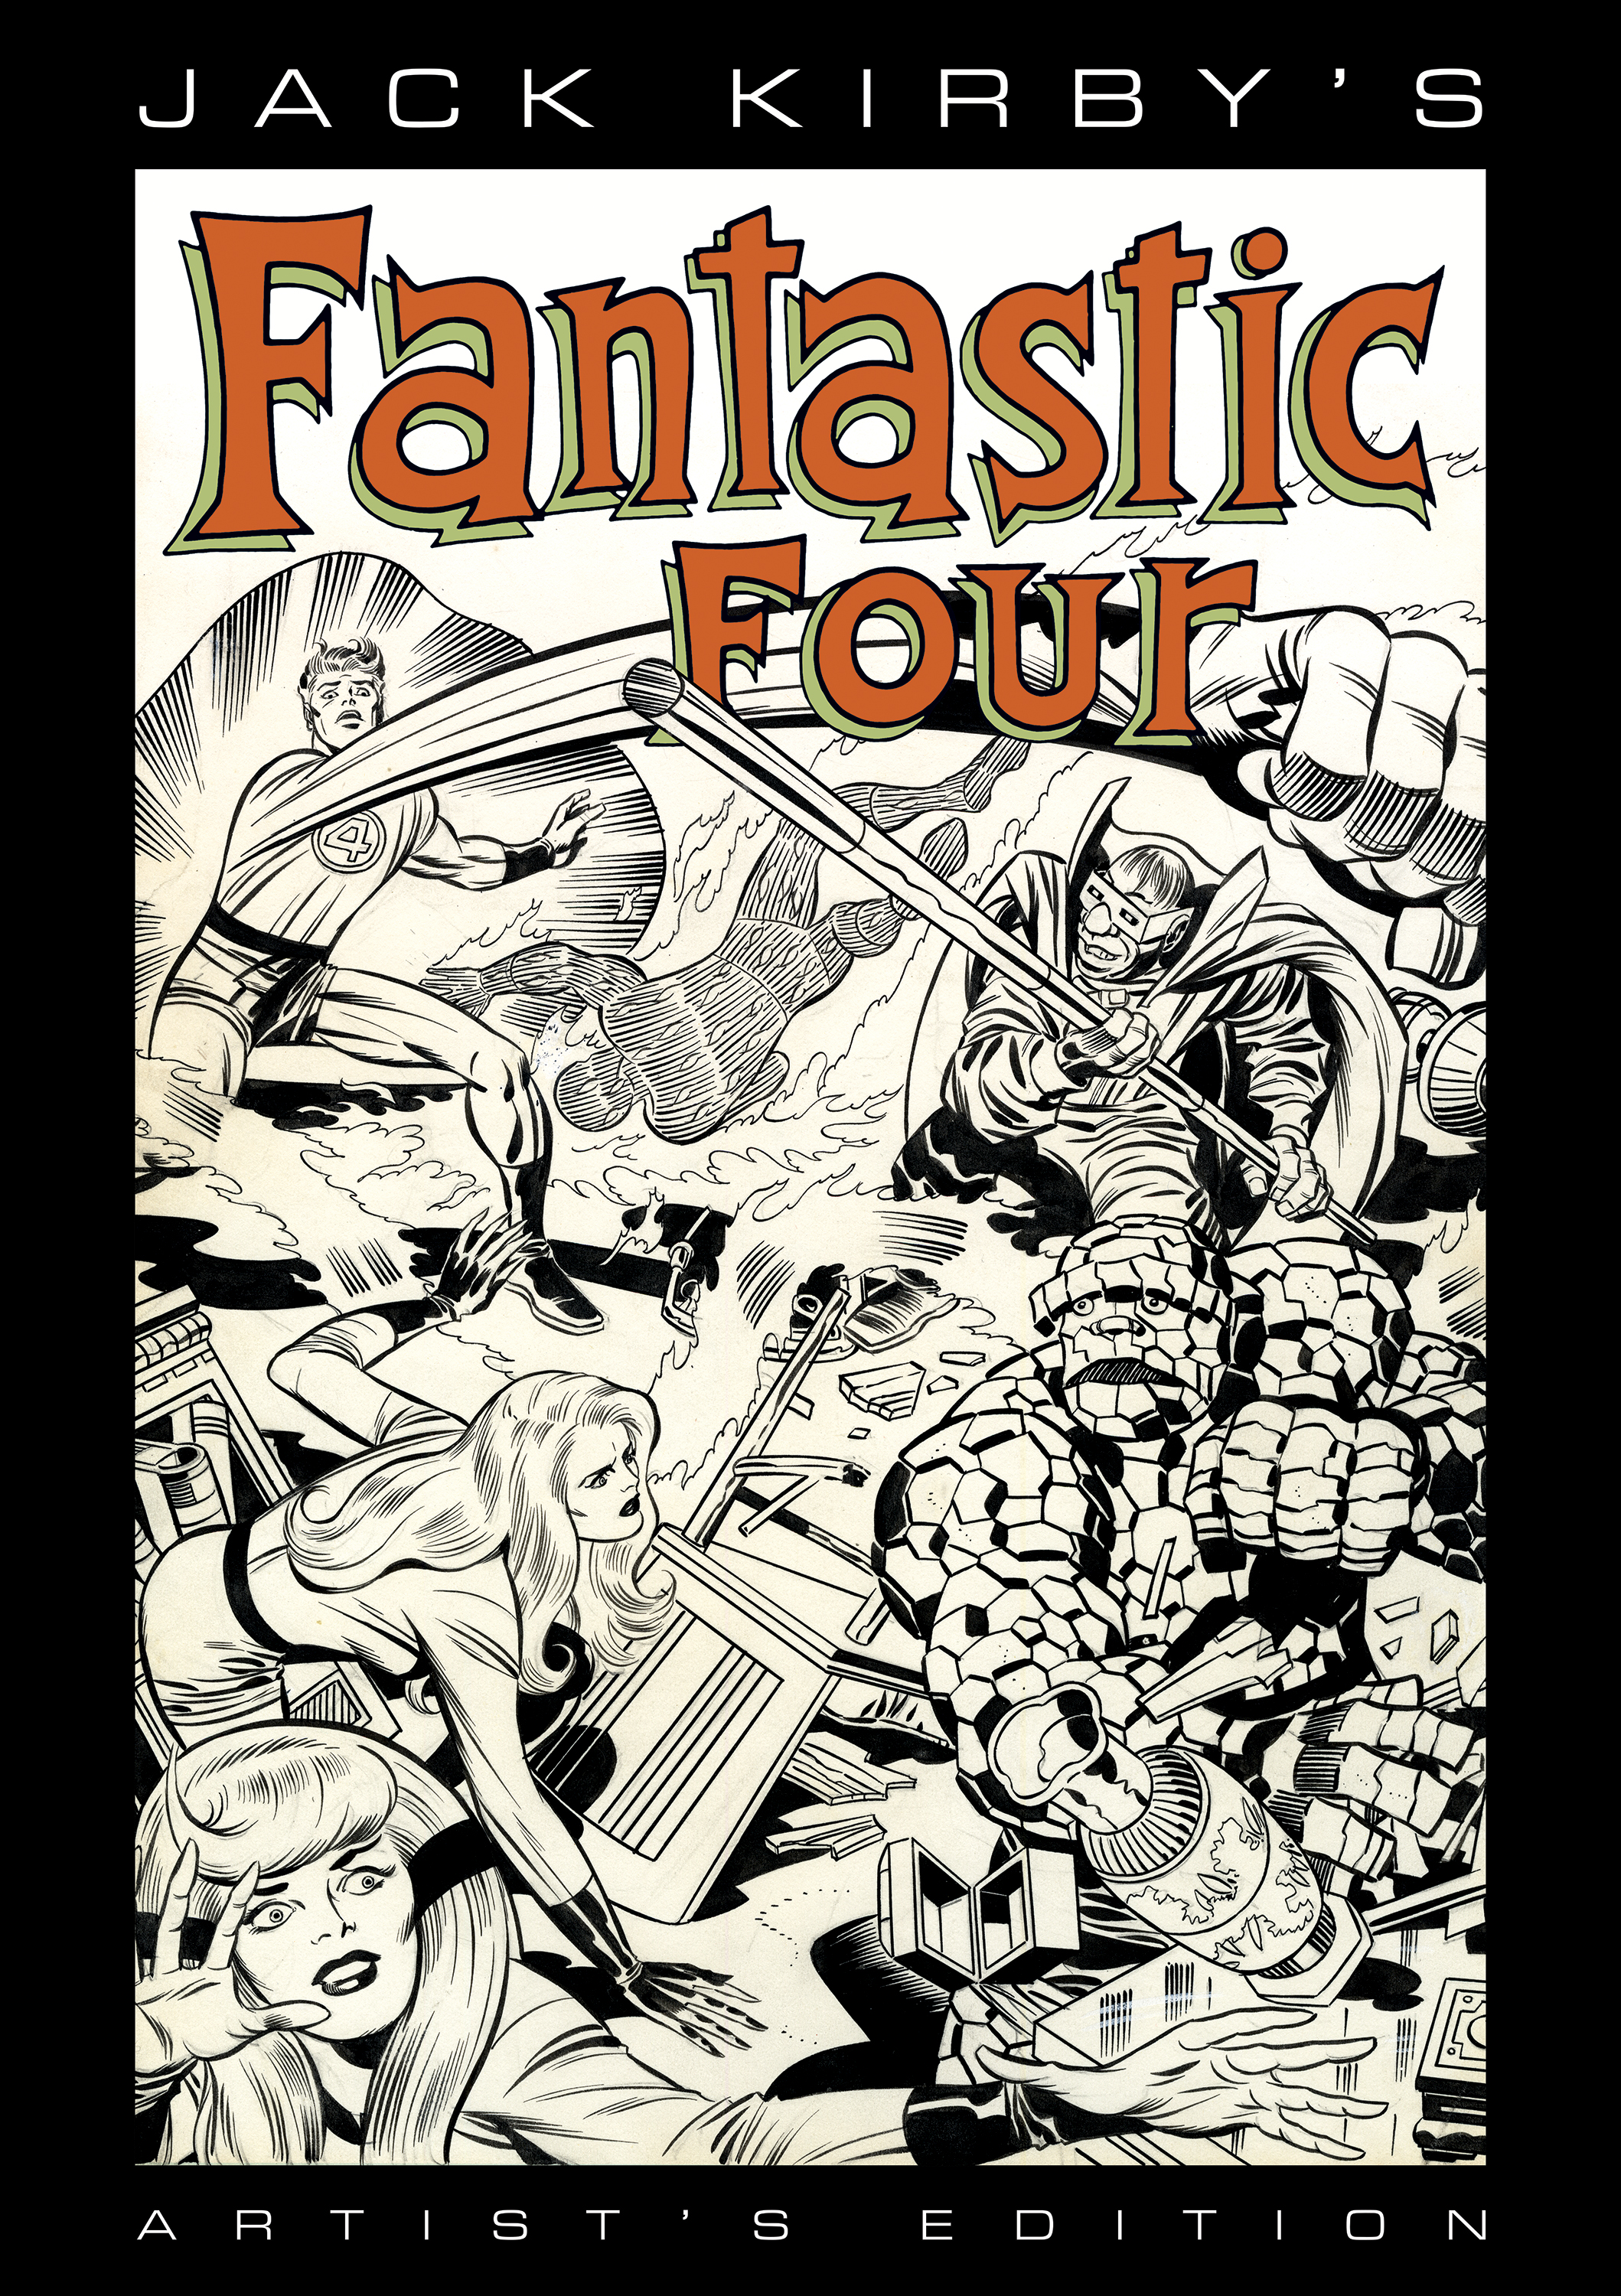 Jack Kirby's Fantastic Four Artist's Edition Coming from IDW!